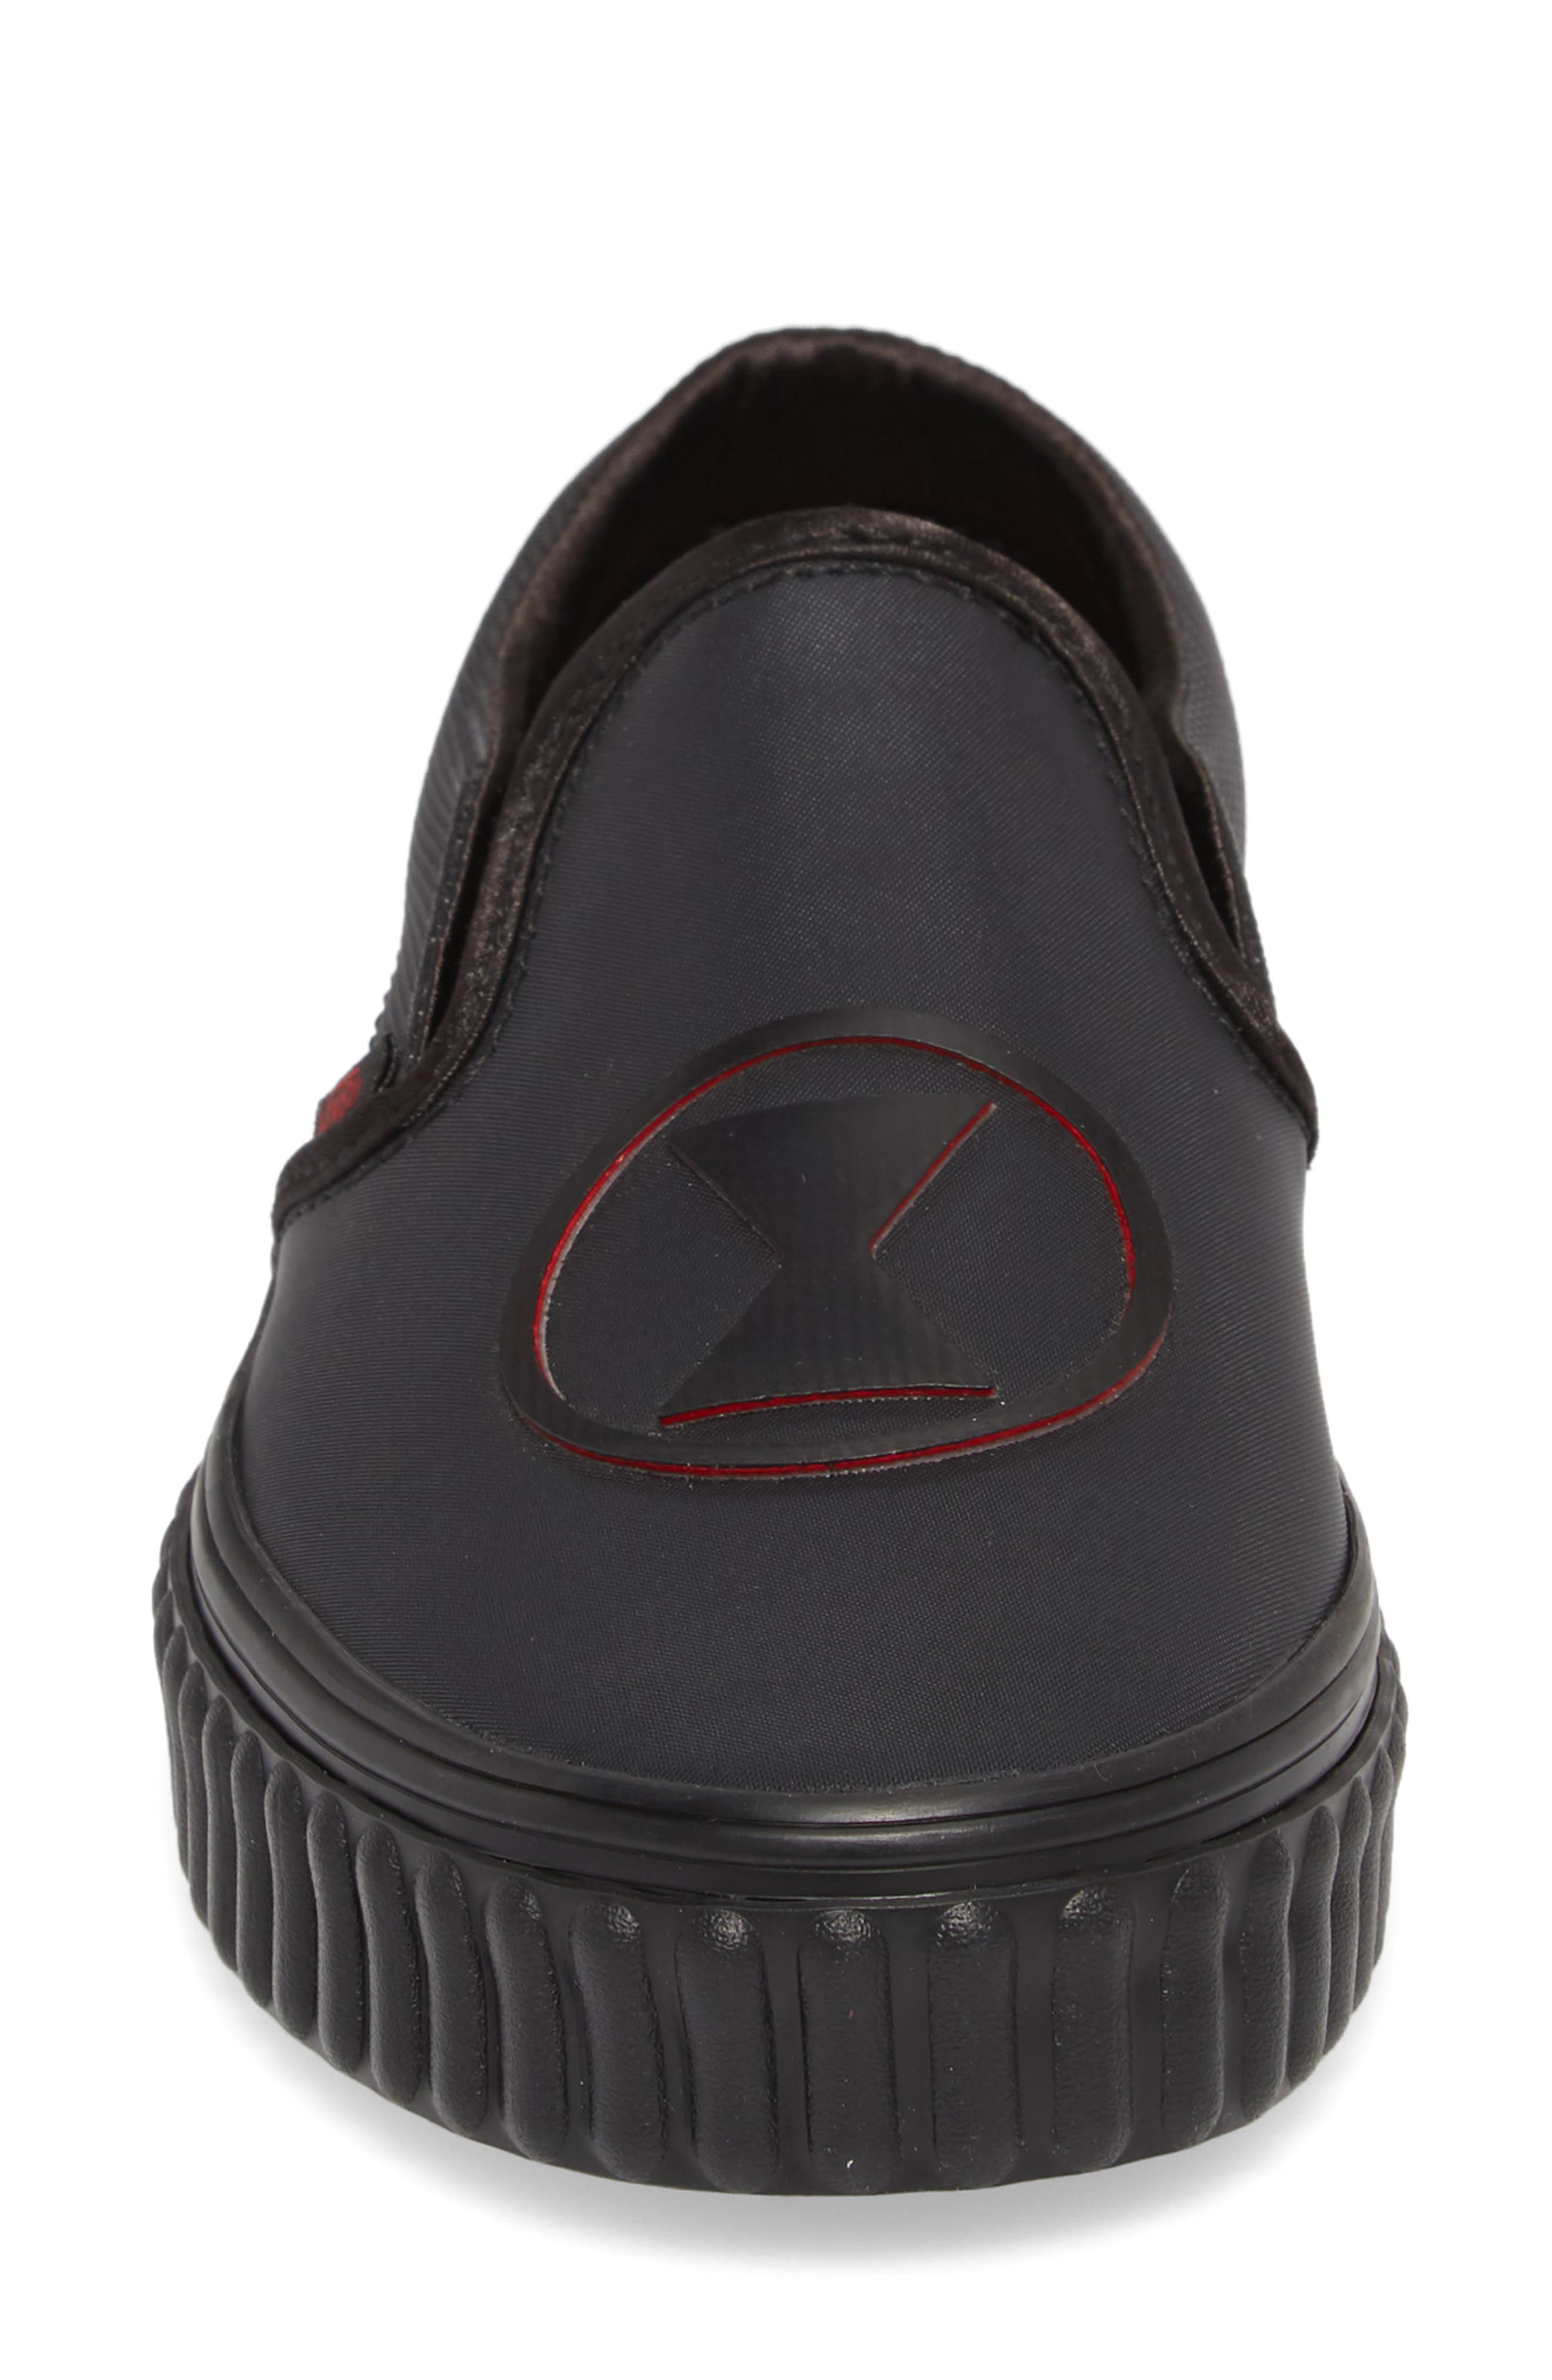 Marvel<sup>®</sup> Black Widow Classic Slip-On,                             Alternate thumbnail 4, color,                             001